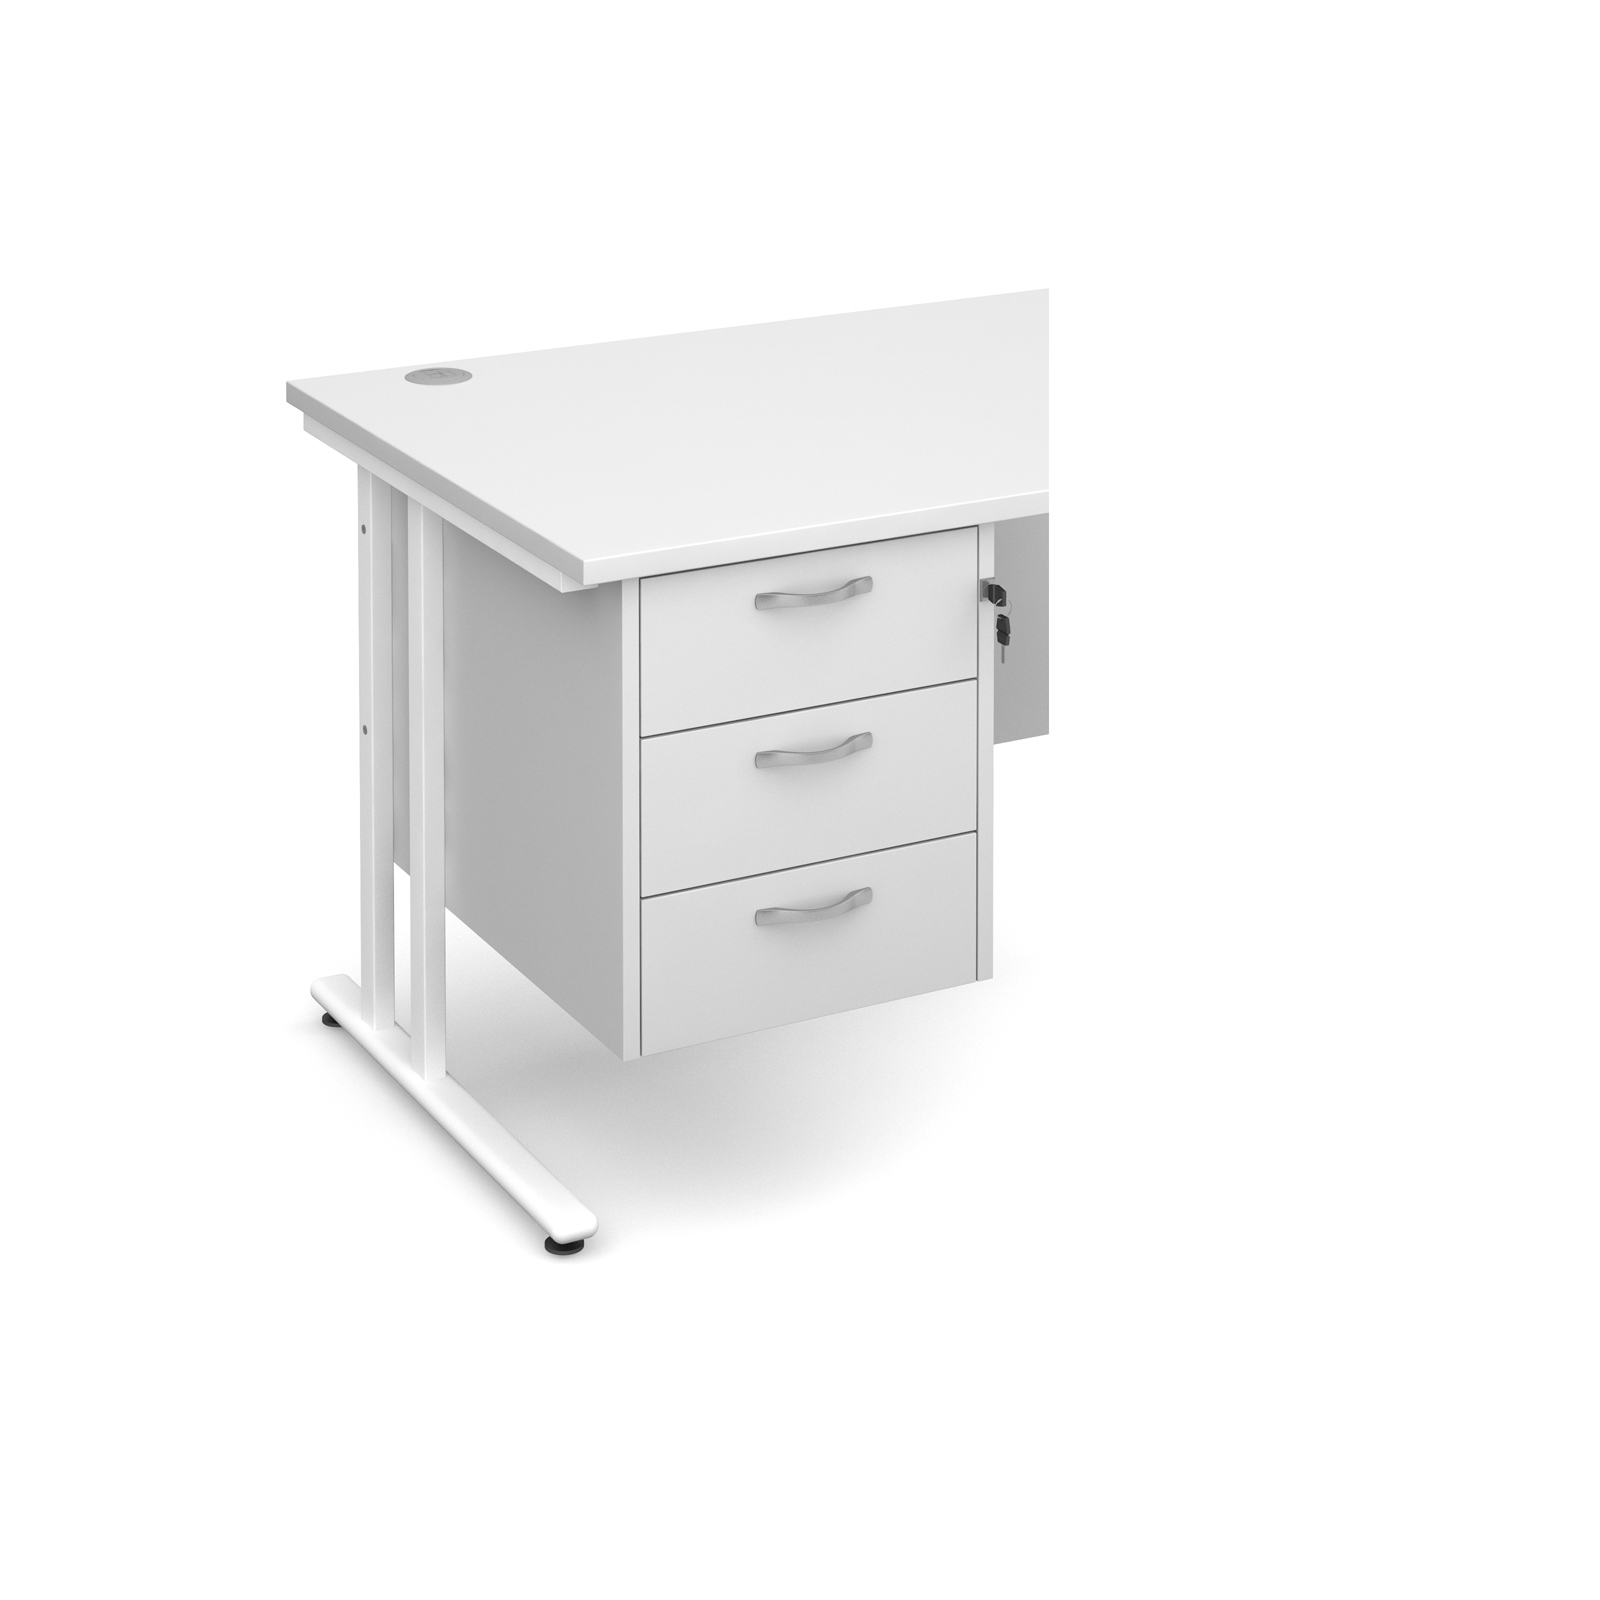 3 Drawer Fixed Pedestal in White